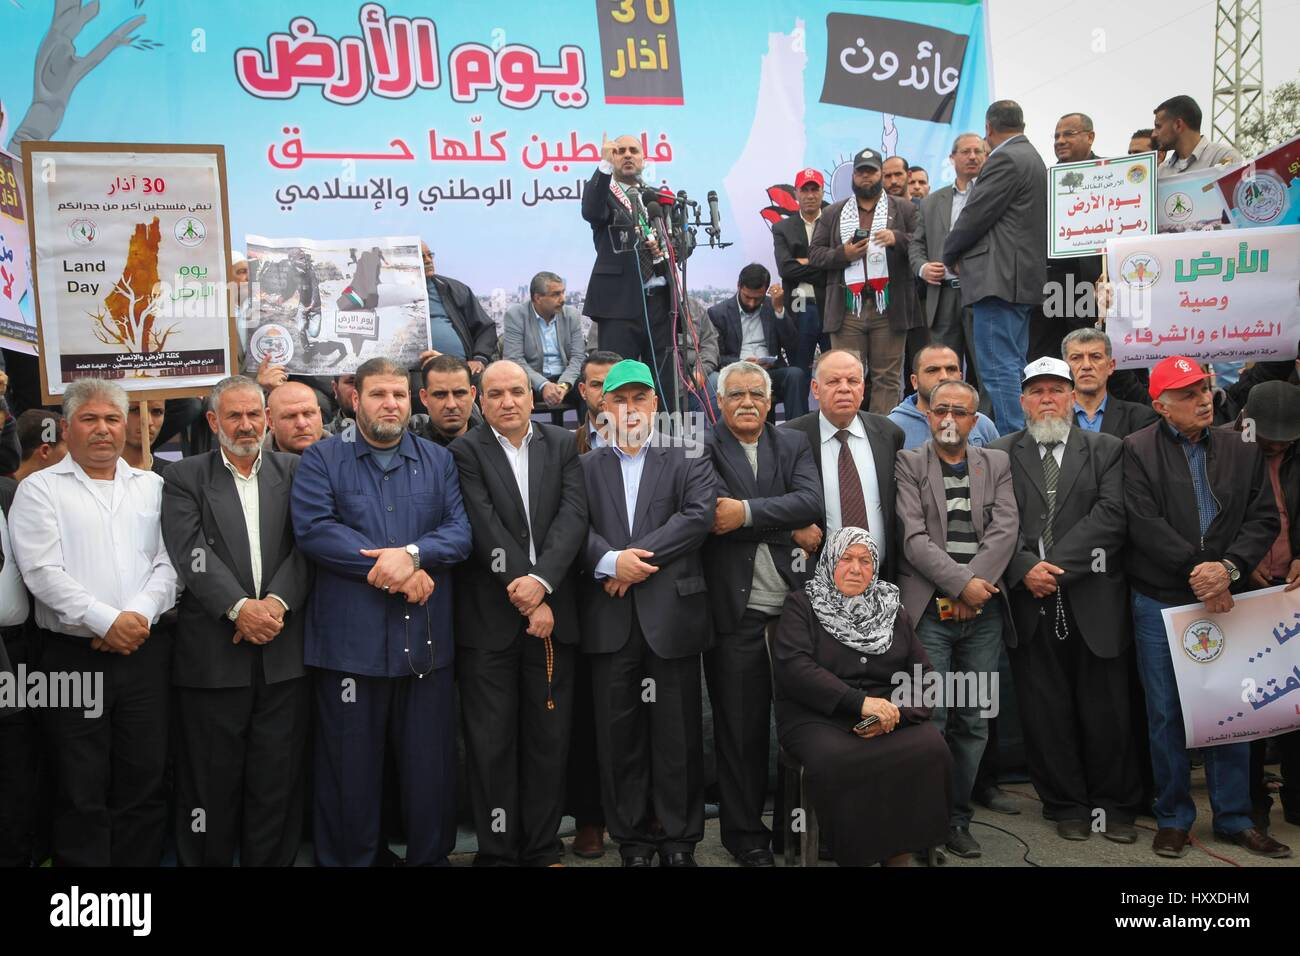 Gaza, Palestine. 30th Mar, 2017. The leaders of the national and Islamic forces are participating during a commemoration - Stock Image